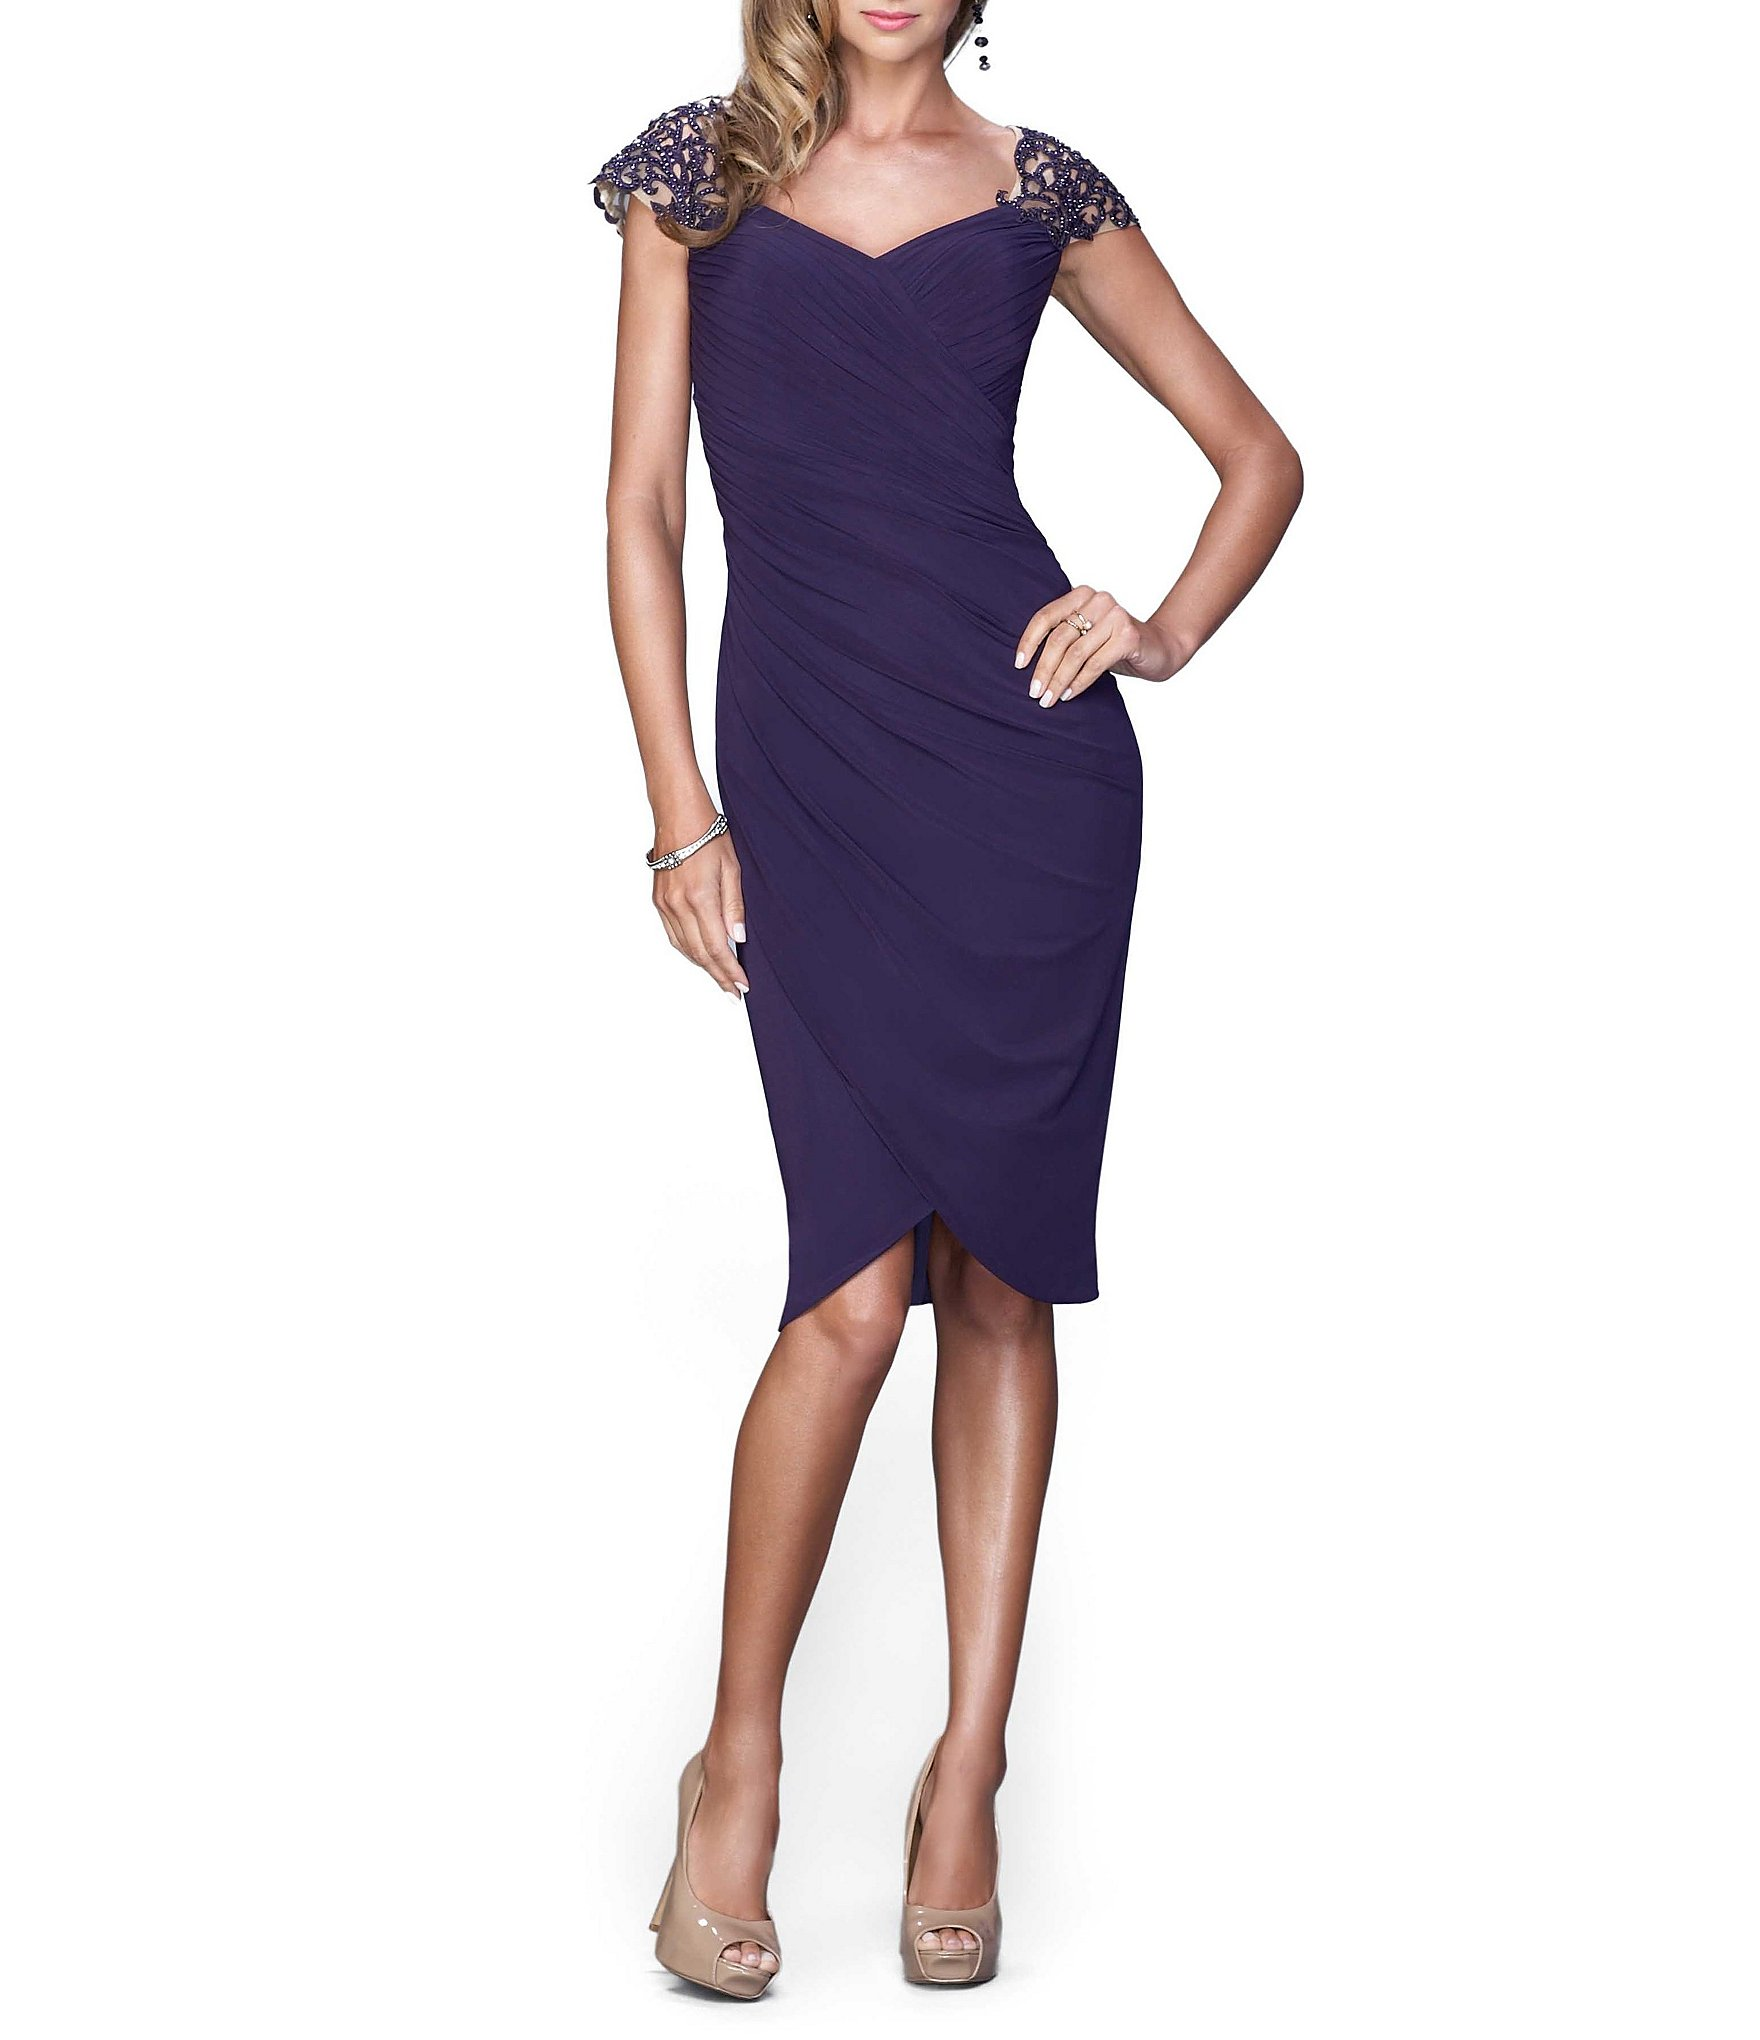 Mother of the Bride Short Dresses & Gowns